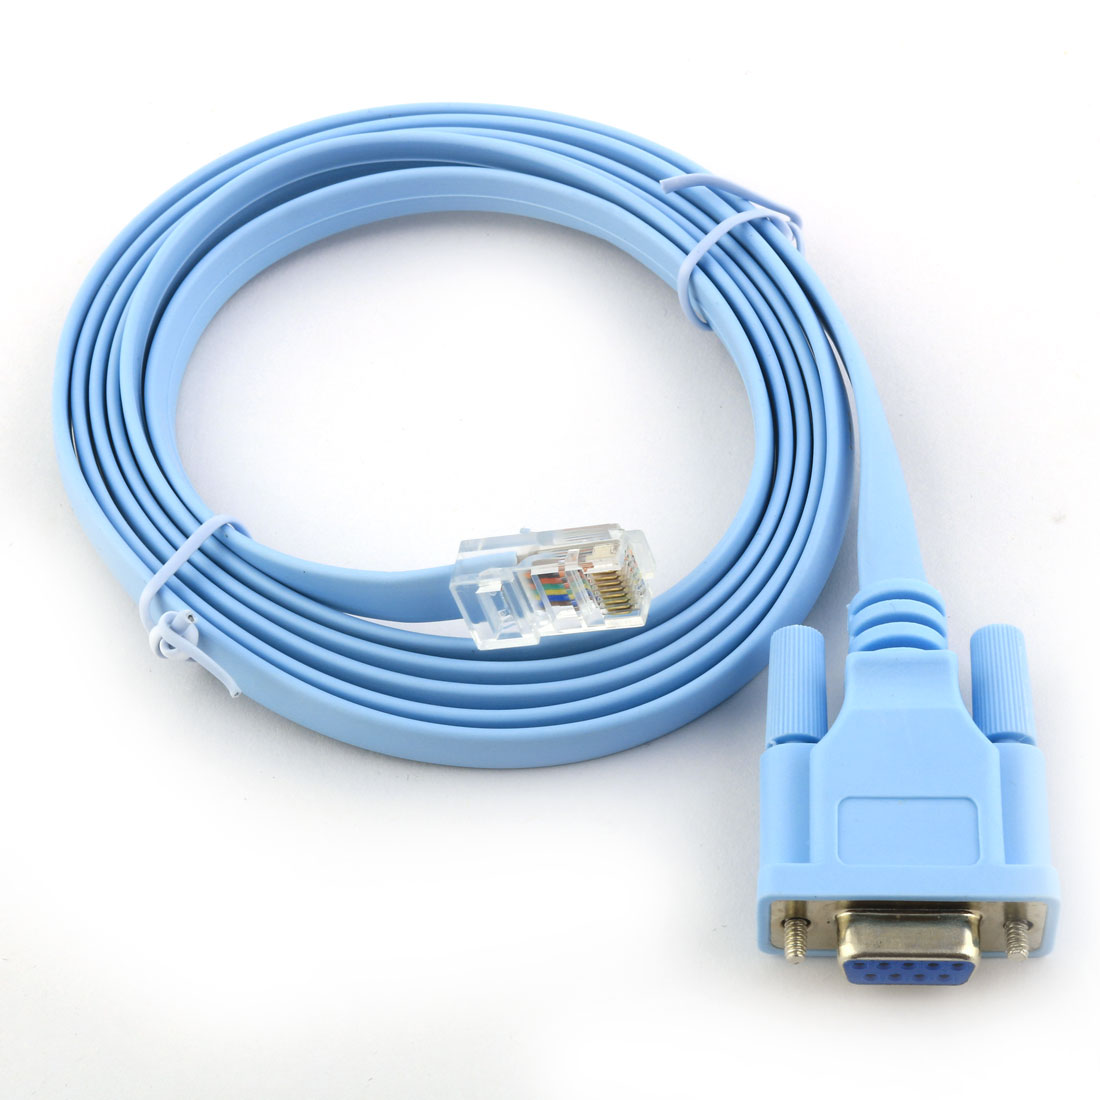 RS232 DB9 9 Pin Female to Male RJ45 8P8C Plug Extension Cable 1.8M Long